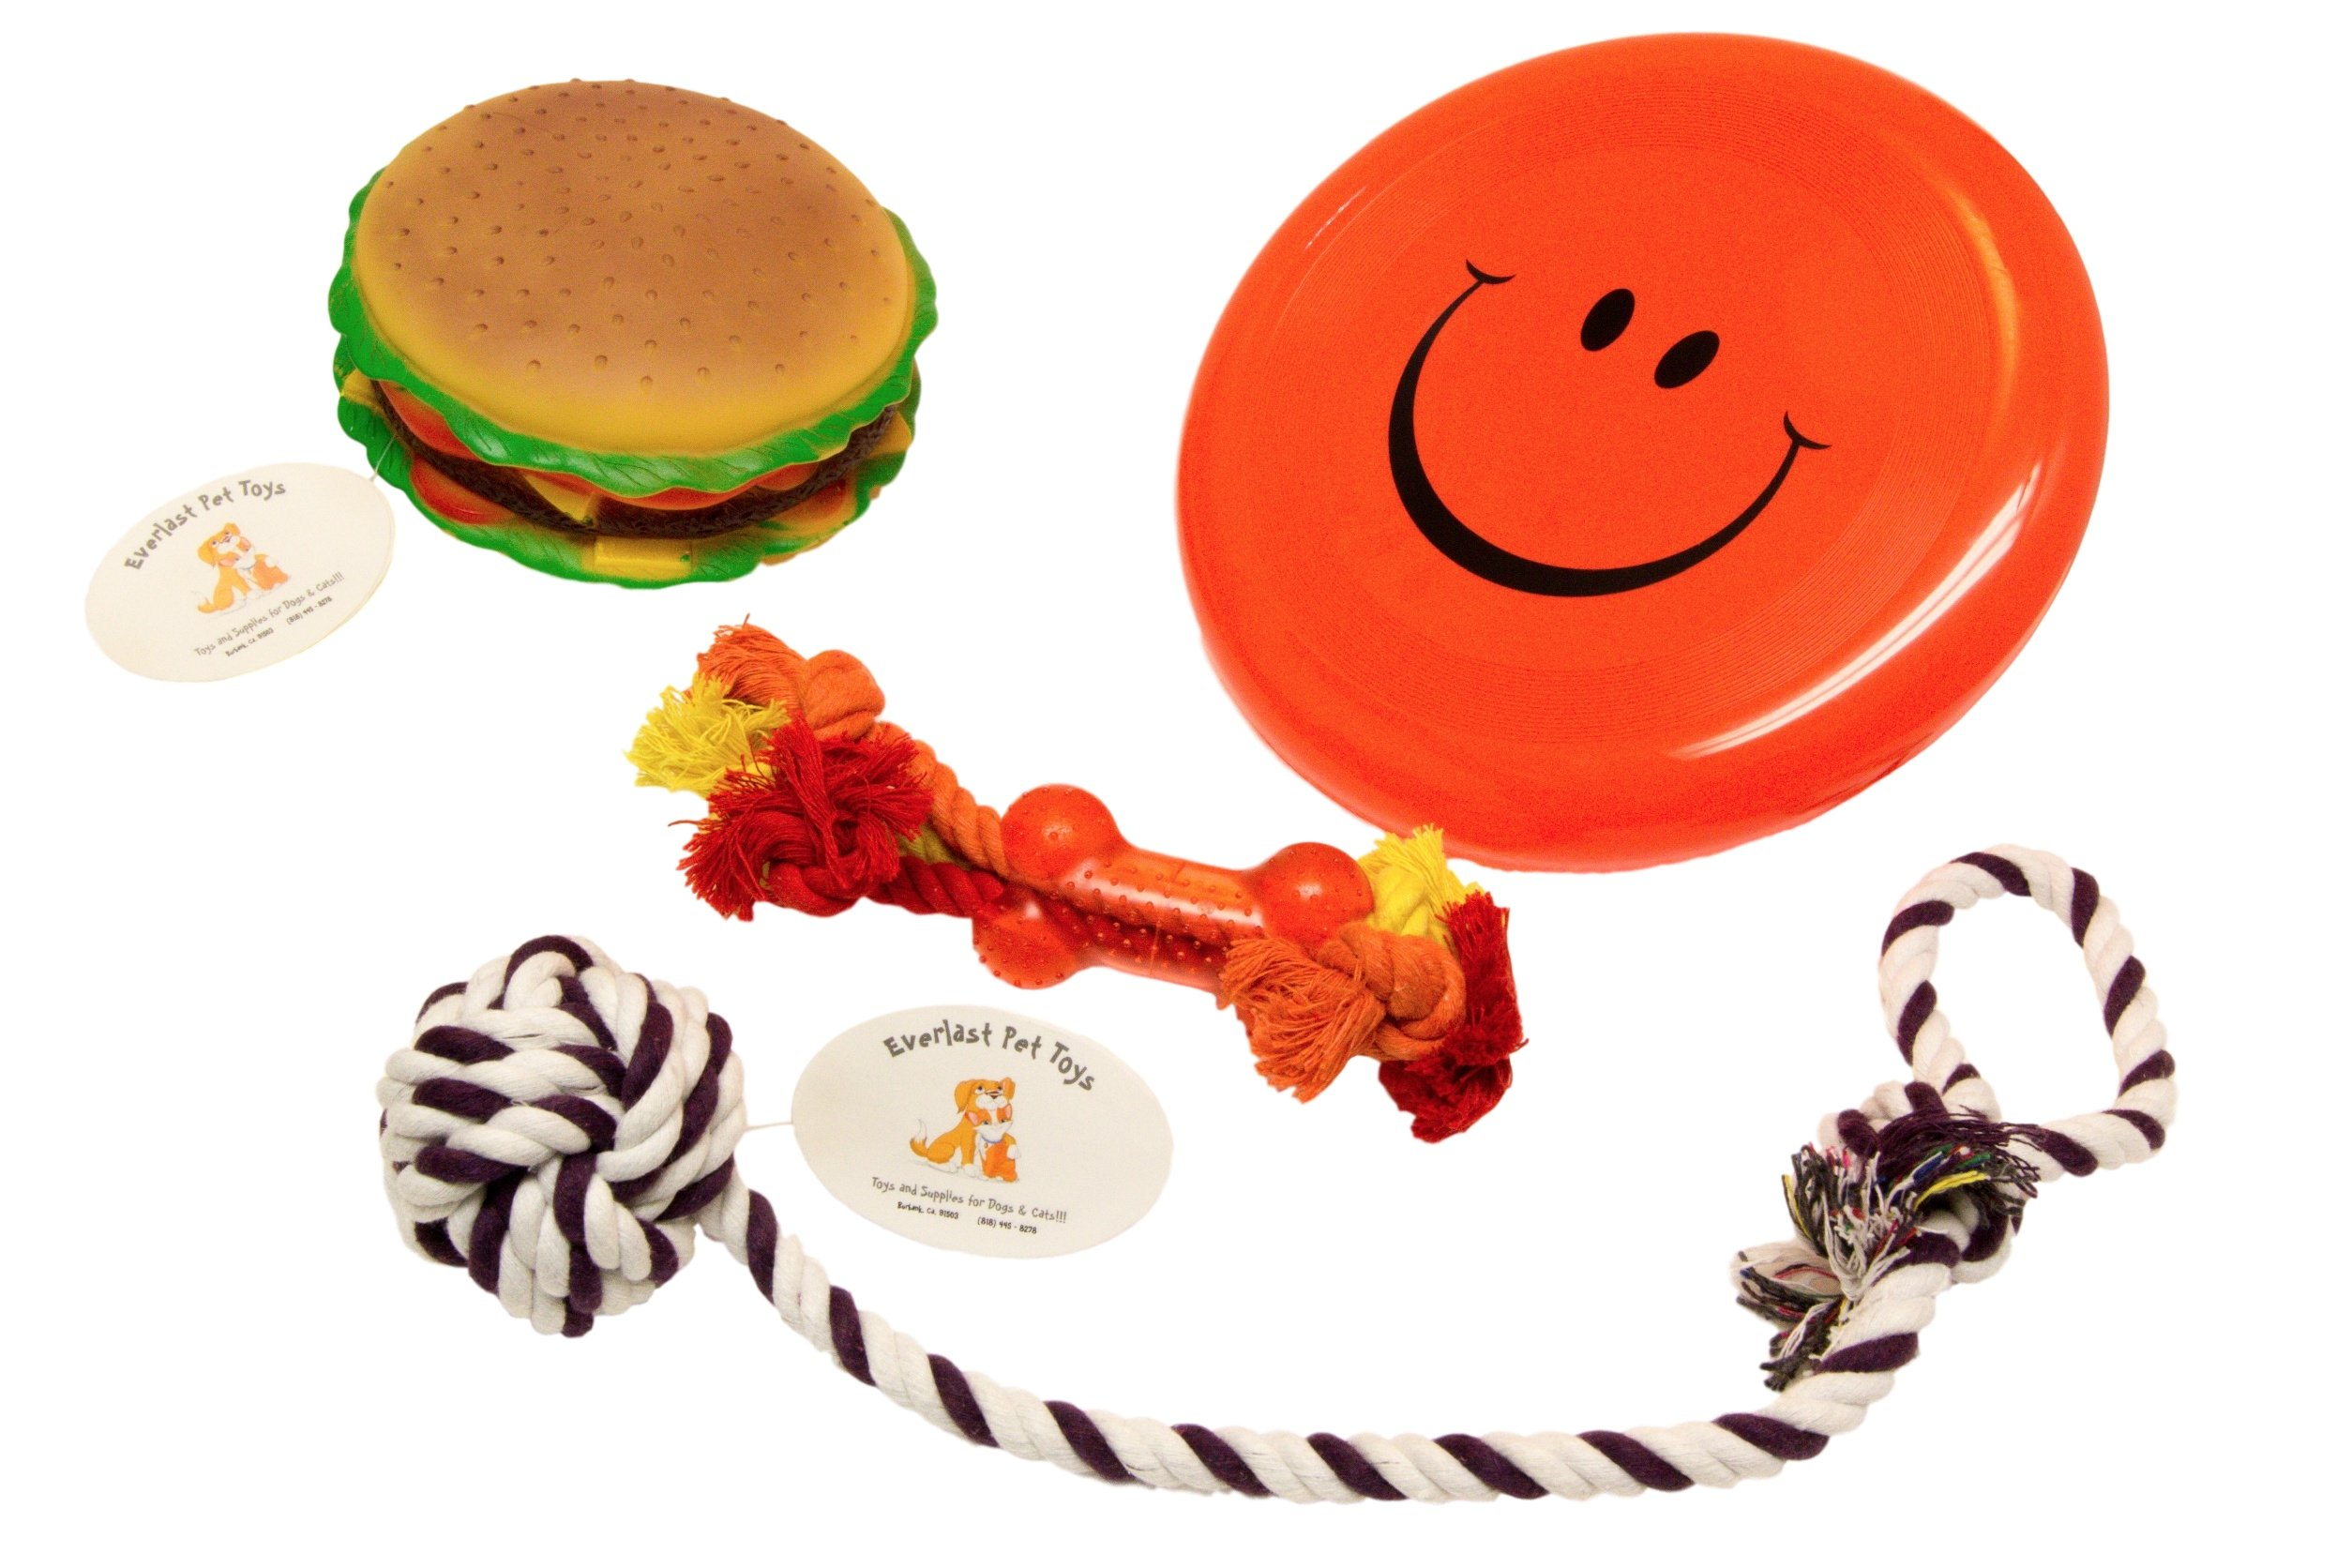 Everlast Pet Toys | Chew Squeak & Rope Bundle Dogs | 'Fat' Cheeseburger | 'Smiley Face' Flying Disc | Guaranteed | Teether Bone Rope | Knotted Ball Loop Puller Seller